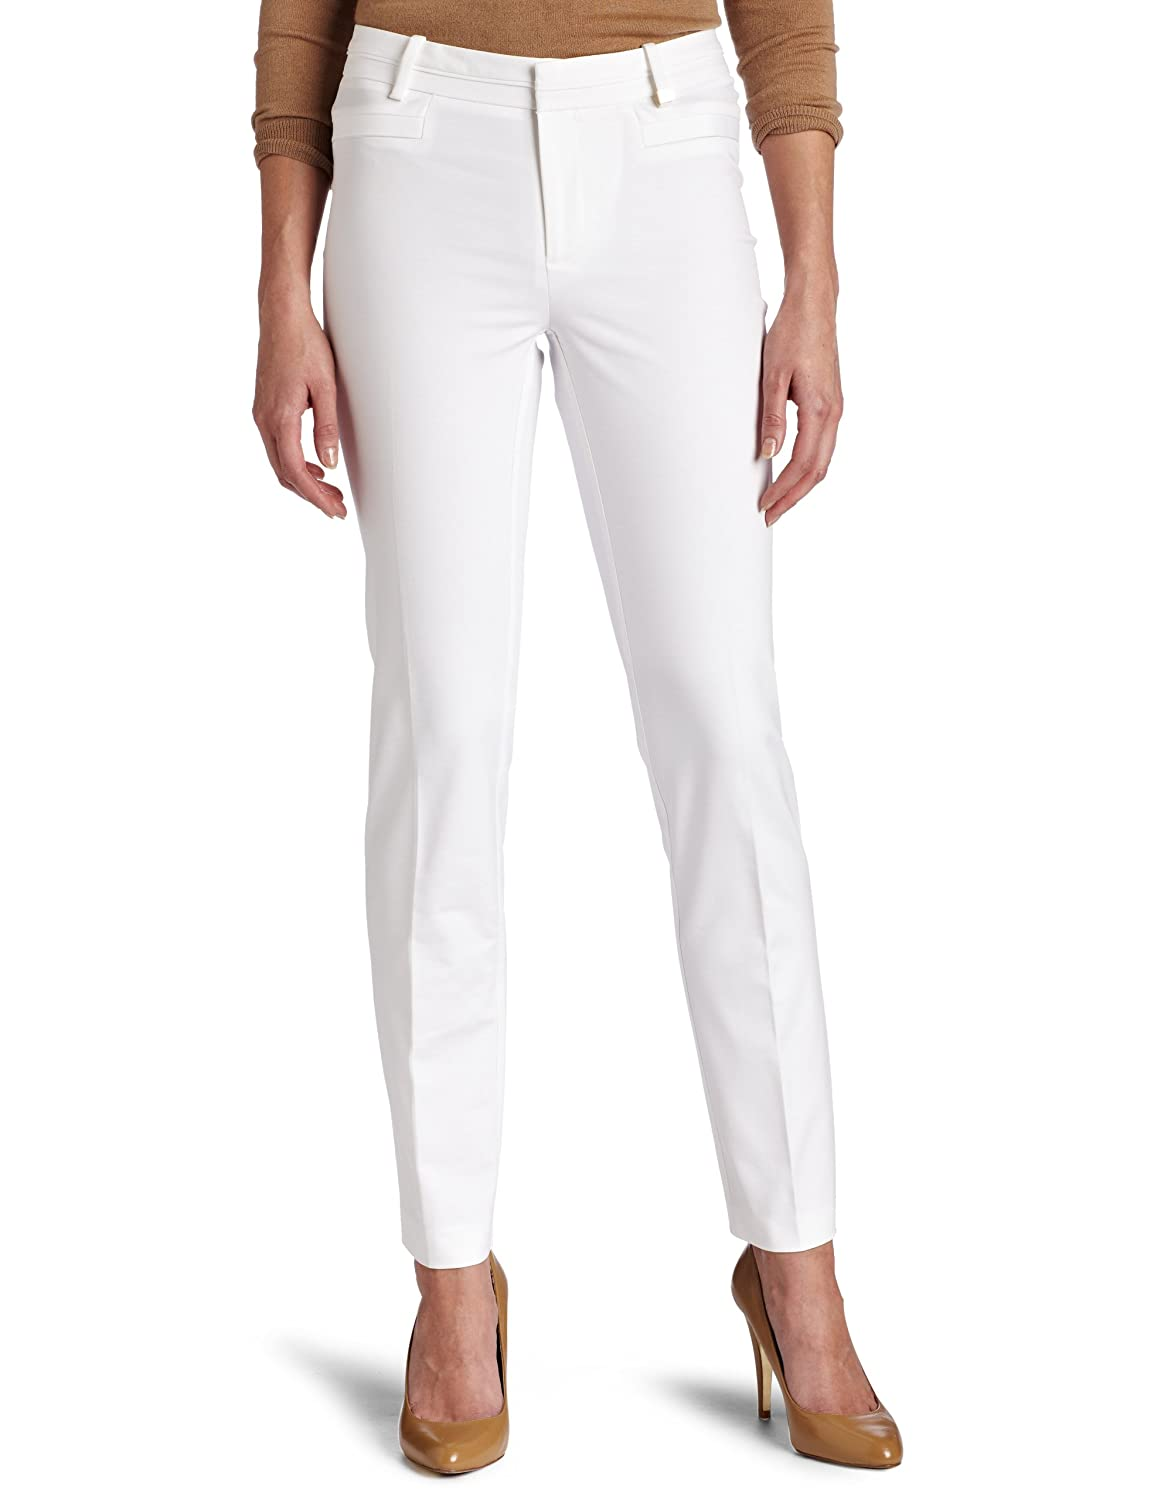 Trendy White Pants For Women